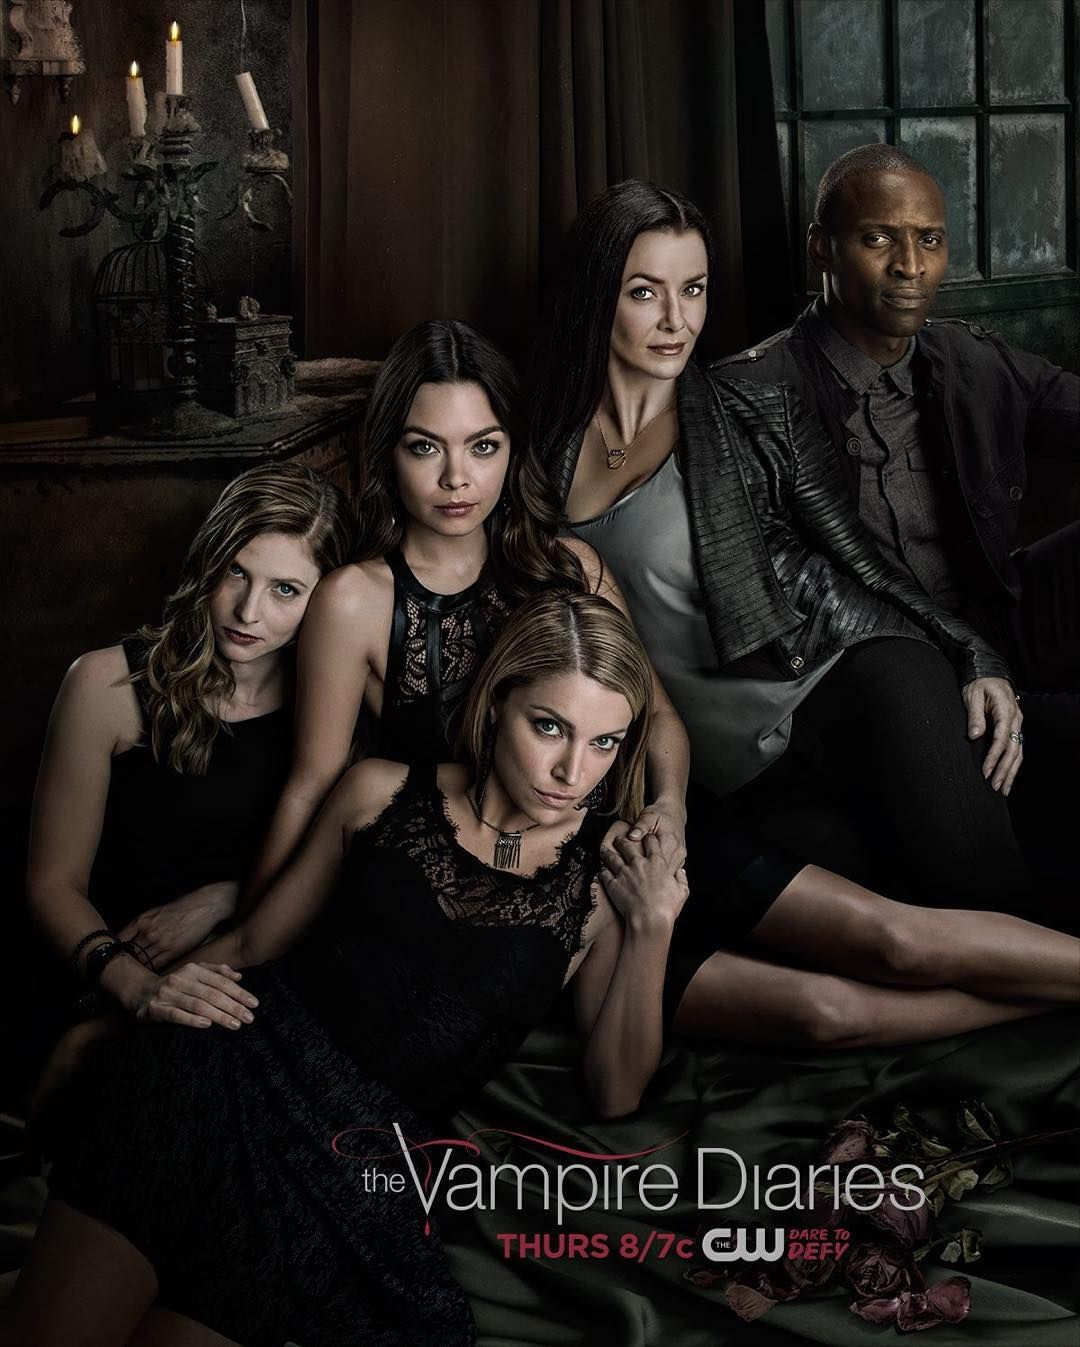 44 6k Likes 1 273 Comments The Vampire Diaries Thecwtvd On